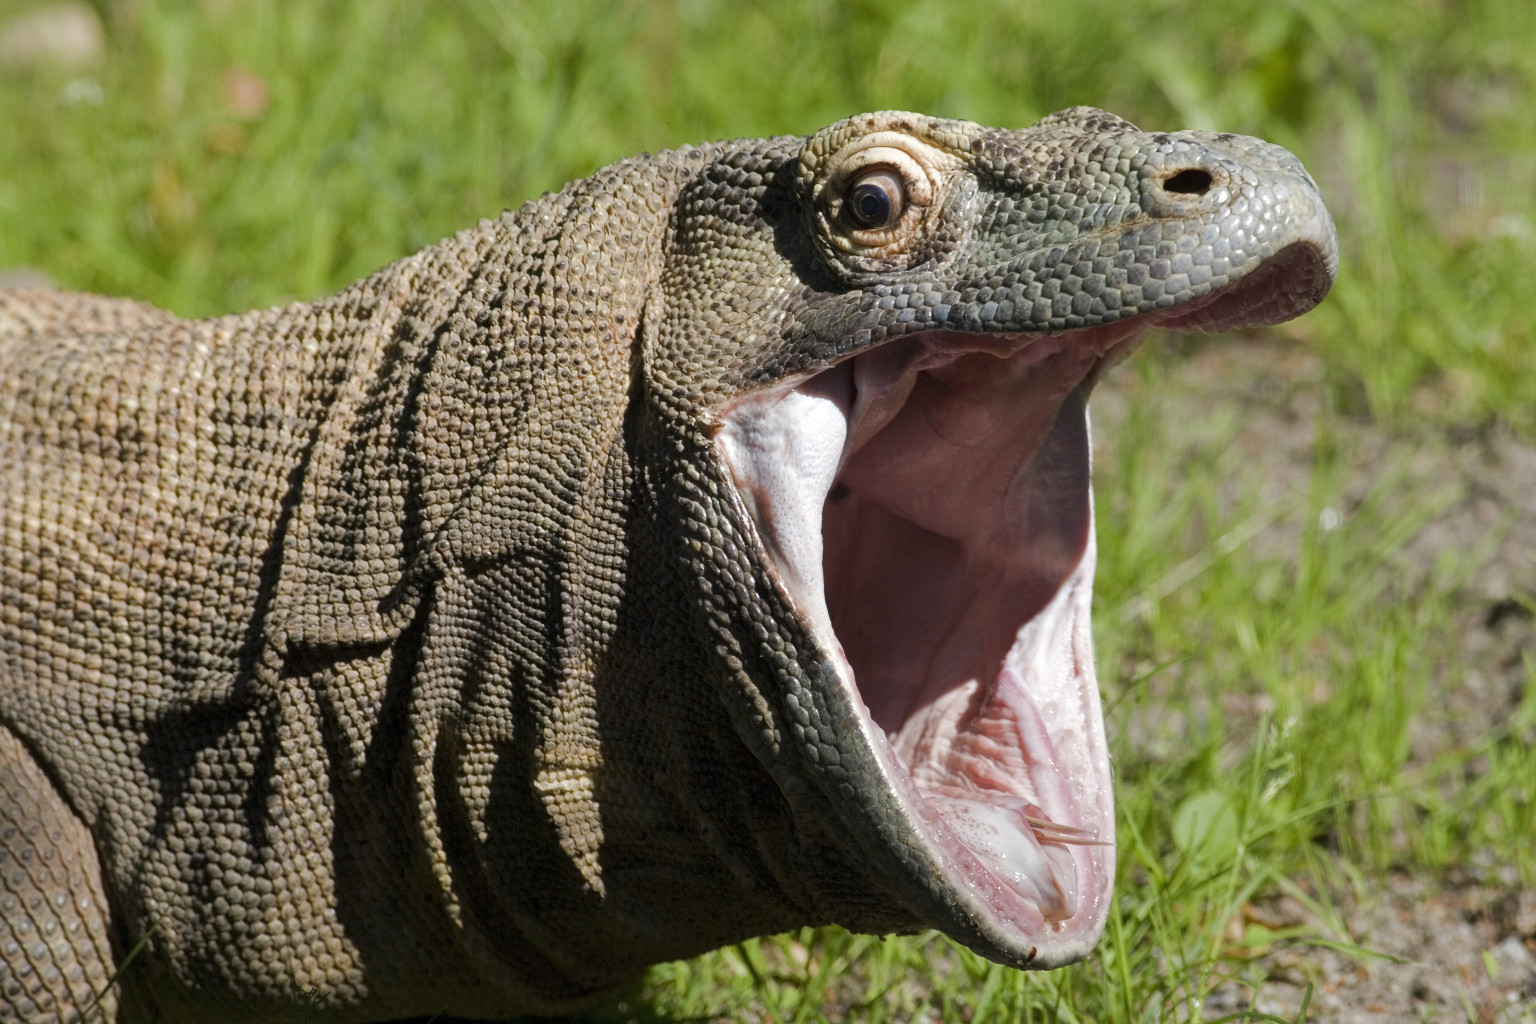 komodo dragon bacteria less toxic than previously thought